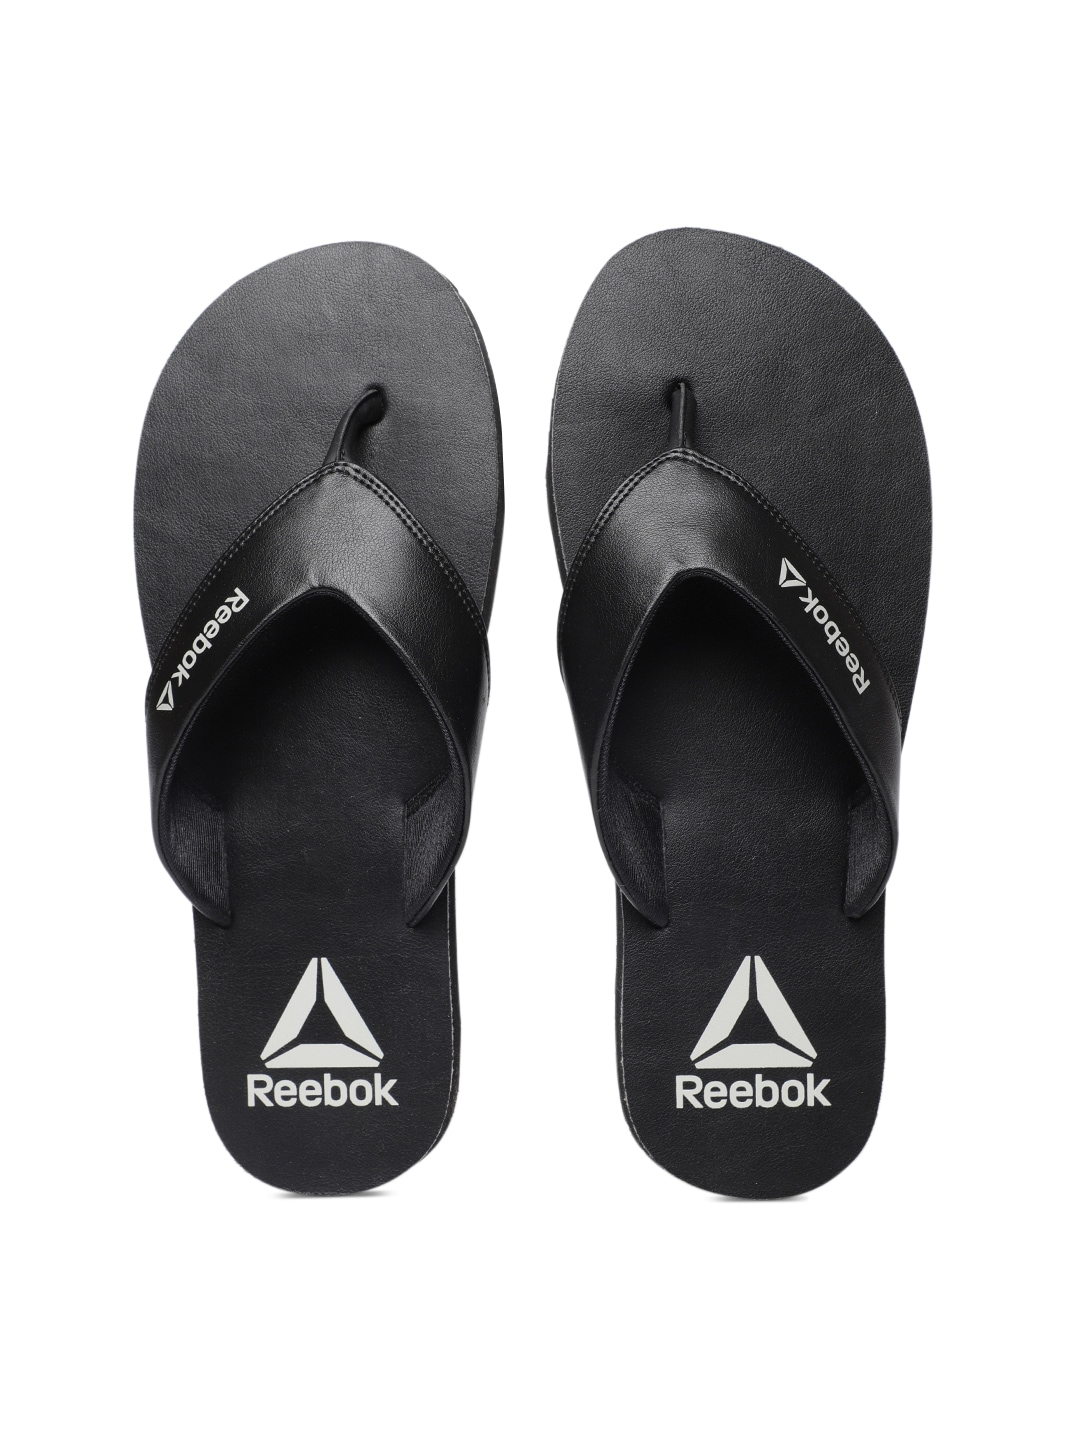 8836ee3f4ee8ba Flip Flops for Men - Buy Slippers   Flip Flops for Men Online